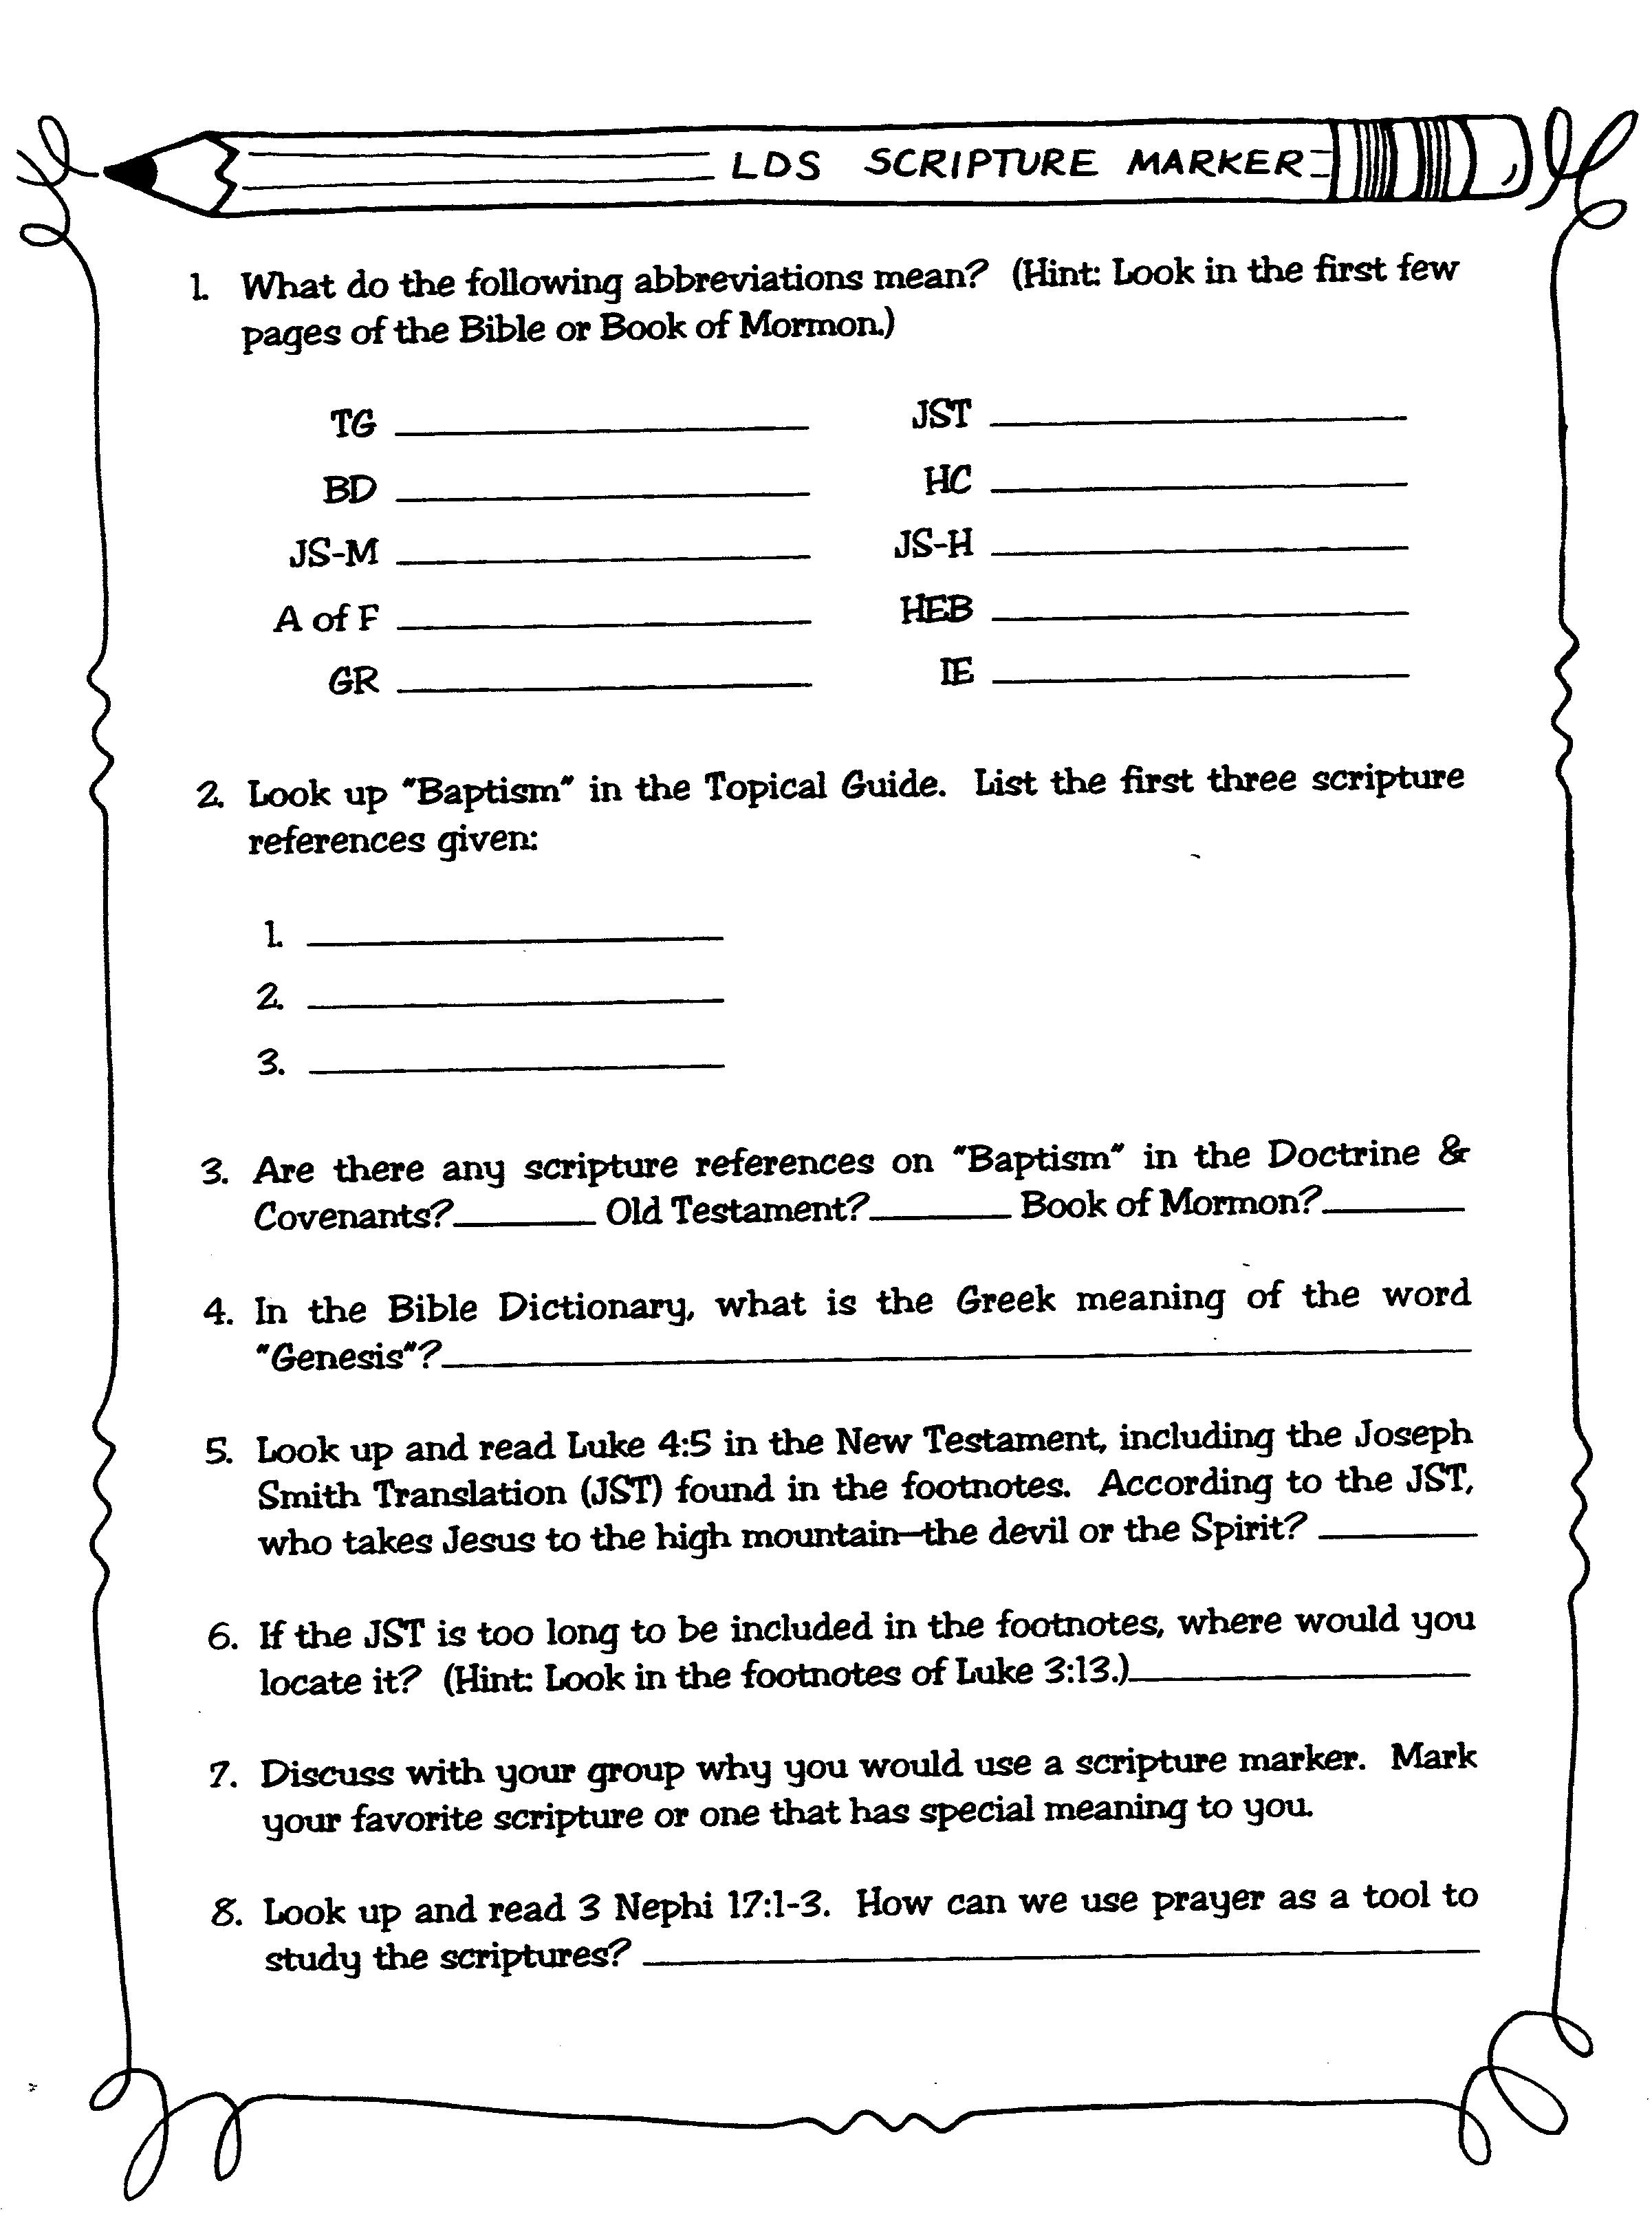 14 Best Images Of Internet Safety Worksheets For